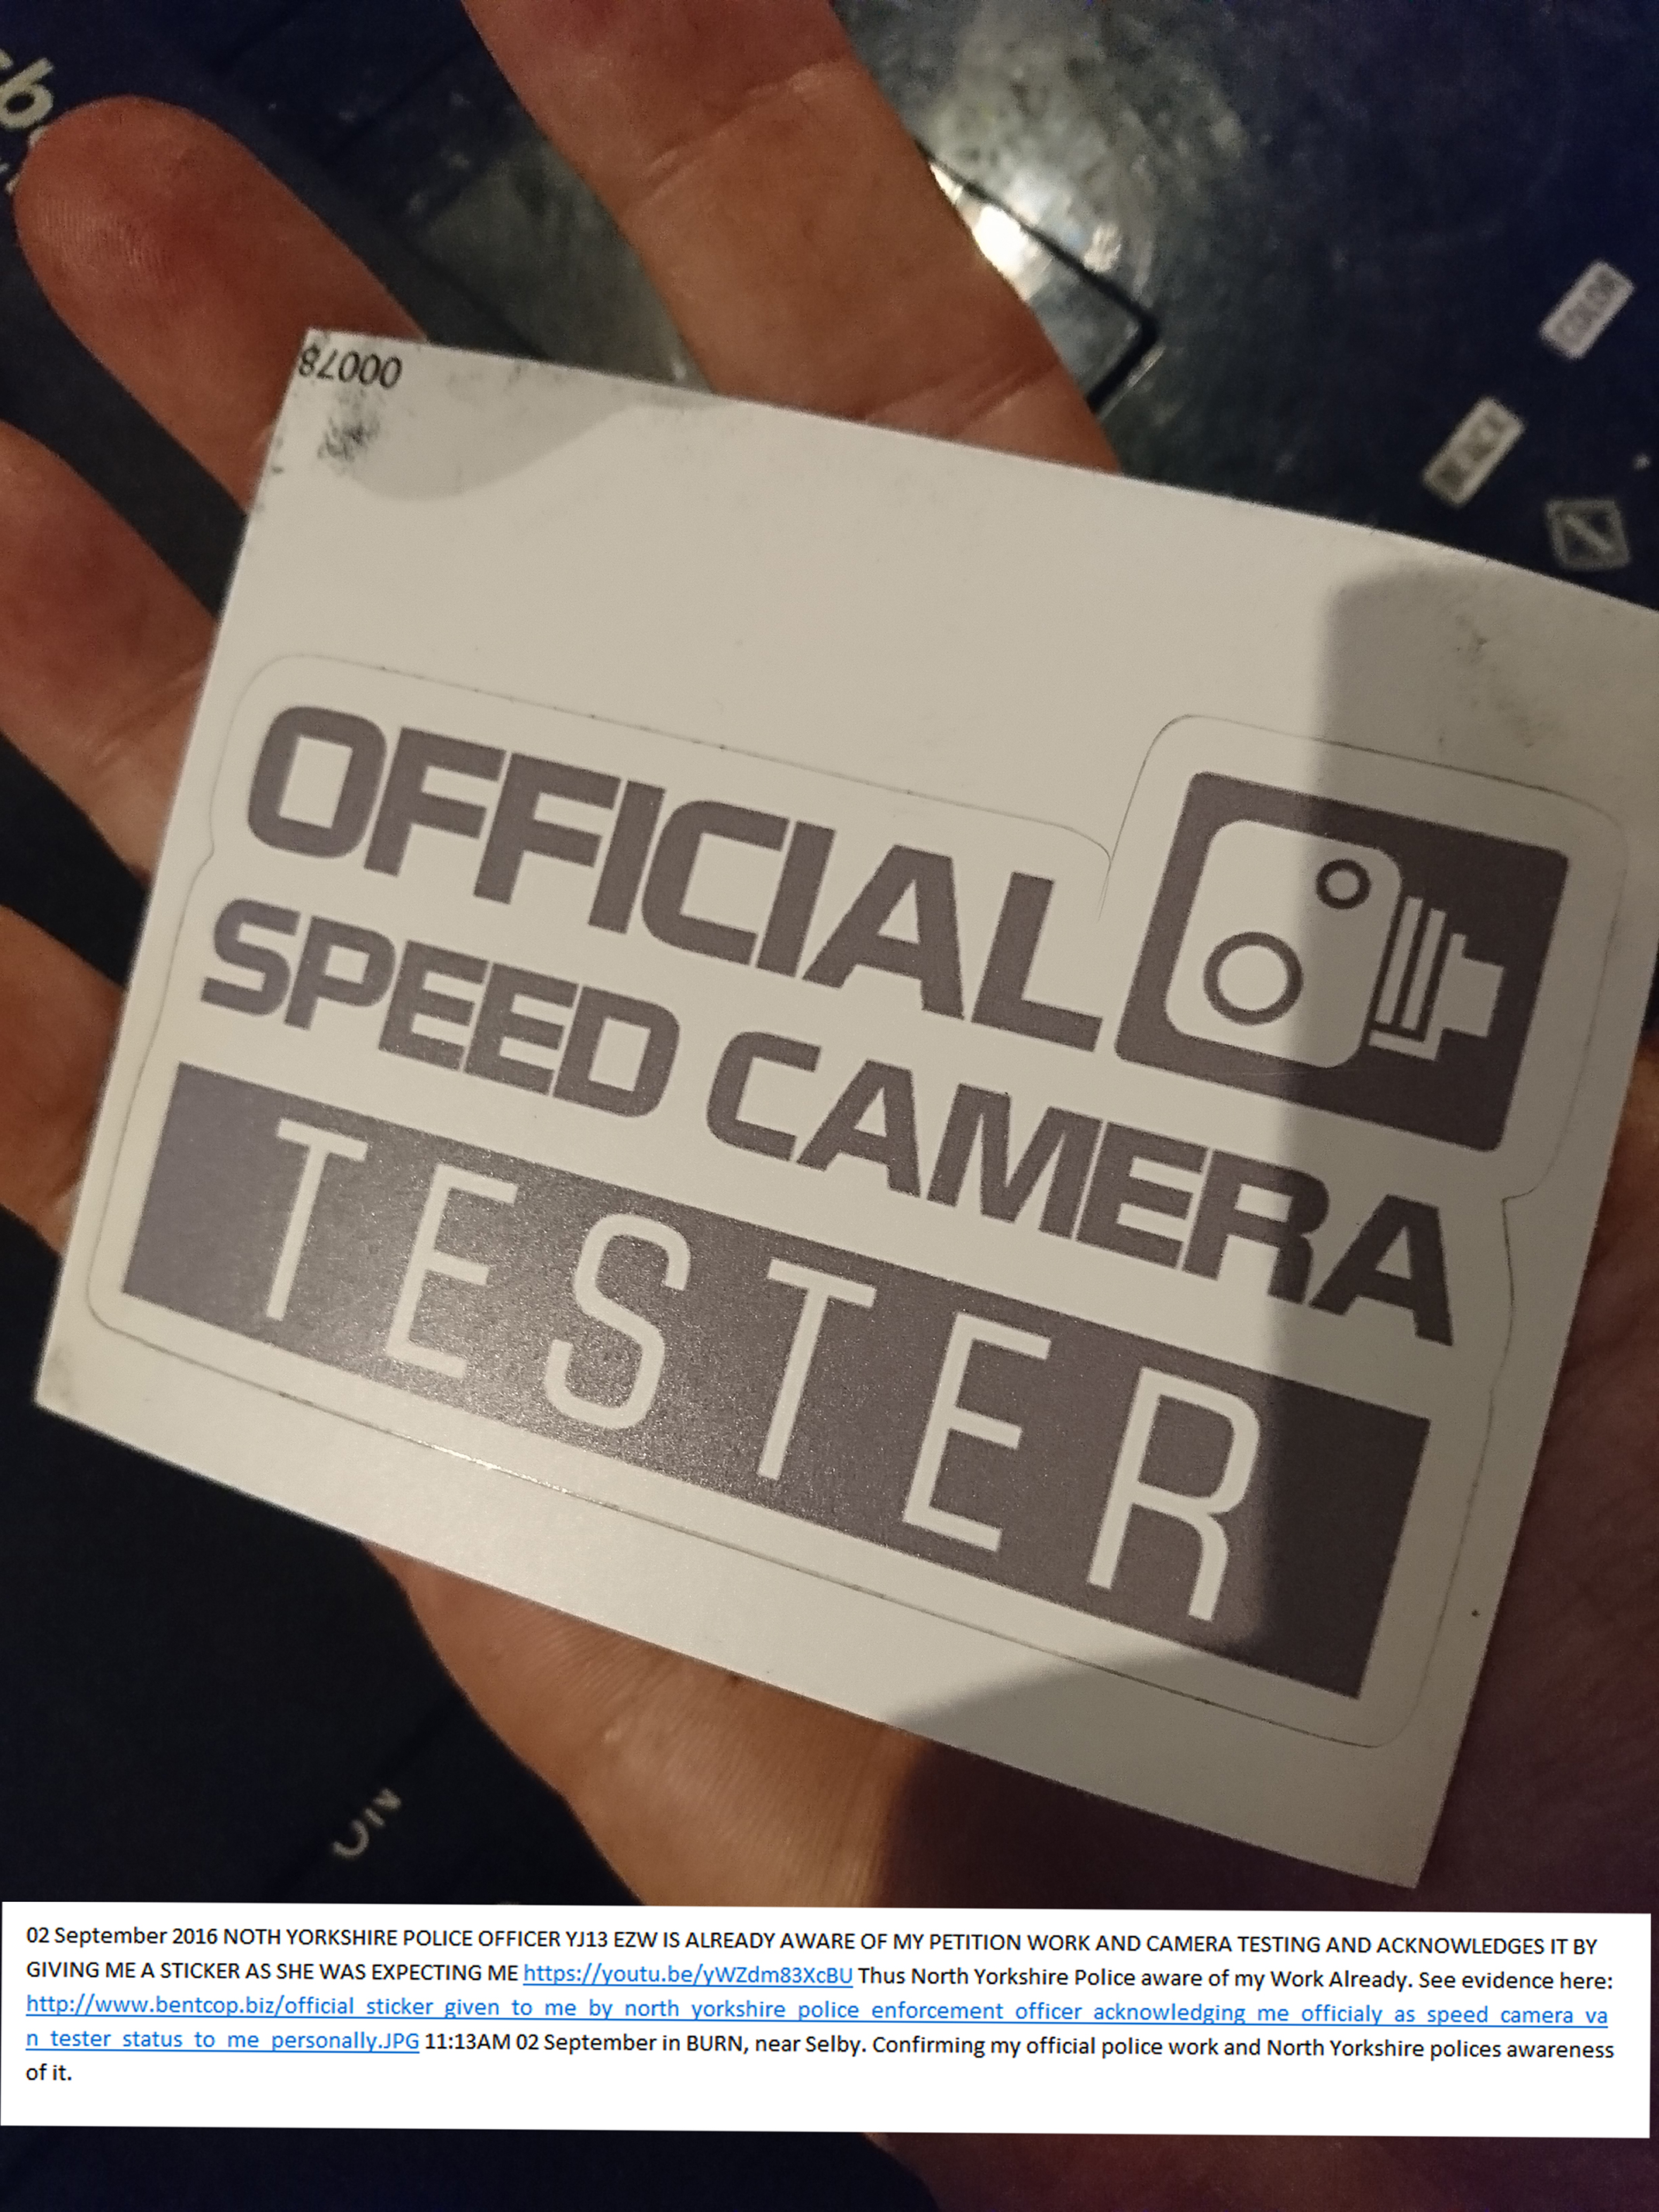 http://www.bentcop.biz/official_sticker_given_to_me_by_north_yorkshire_police_enforcement_officer_acknowledging_me_officialy_as_speed_camera_van_tester_status_to_me_personally.JPG